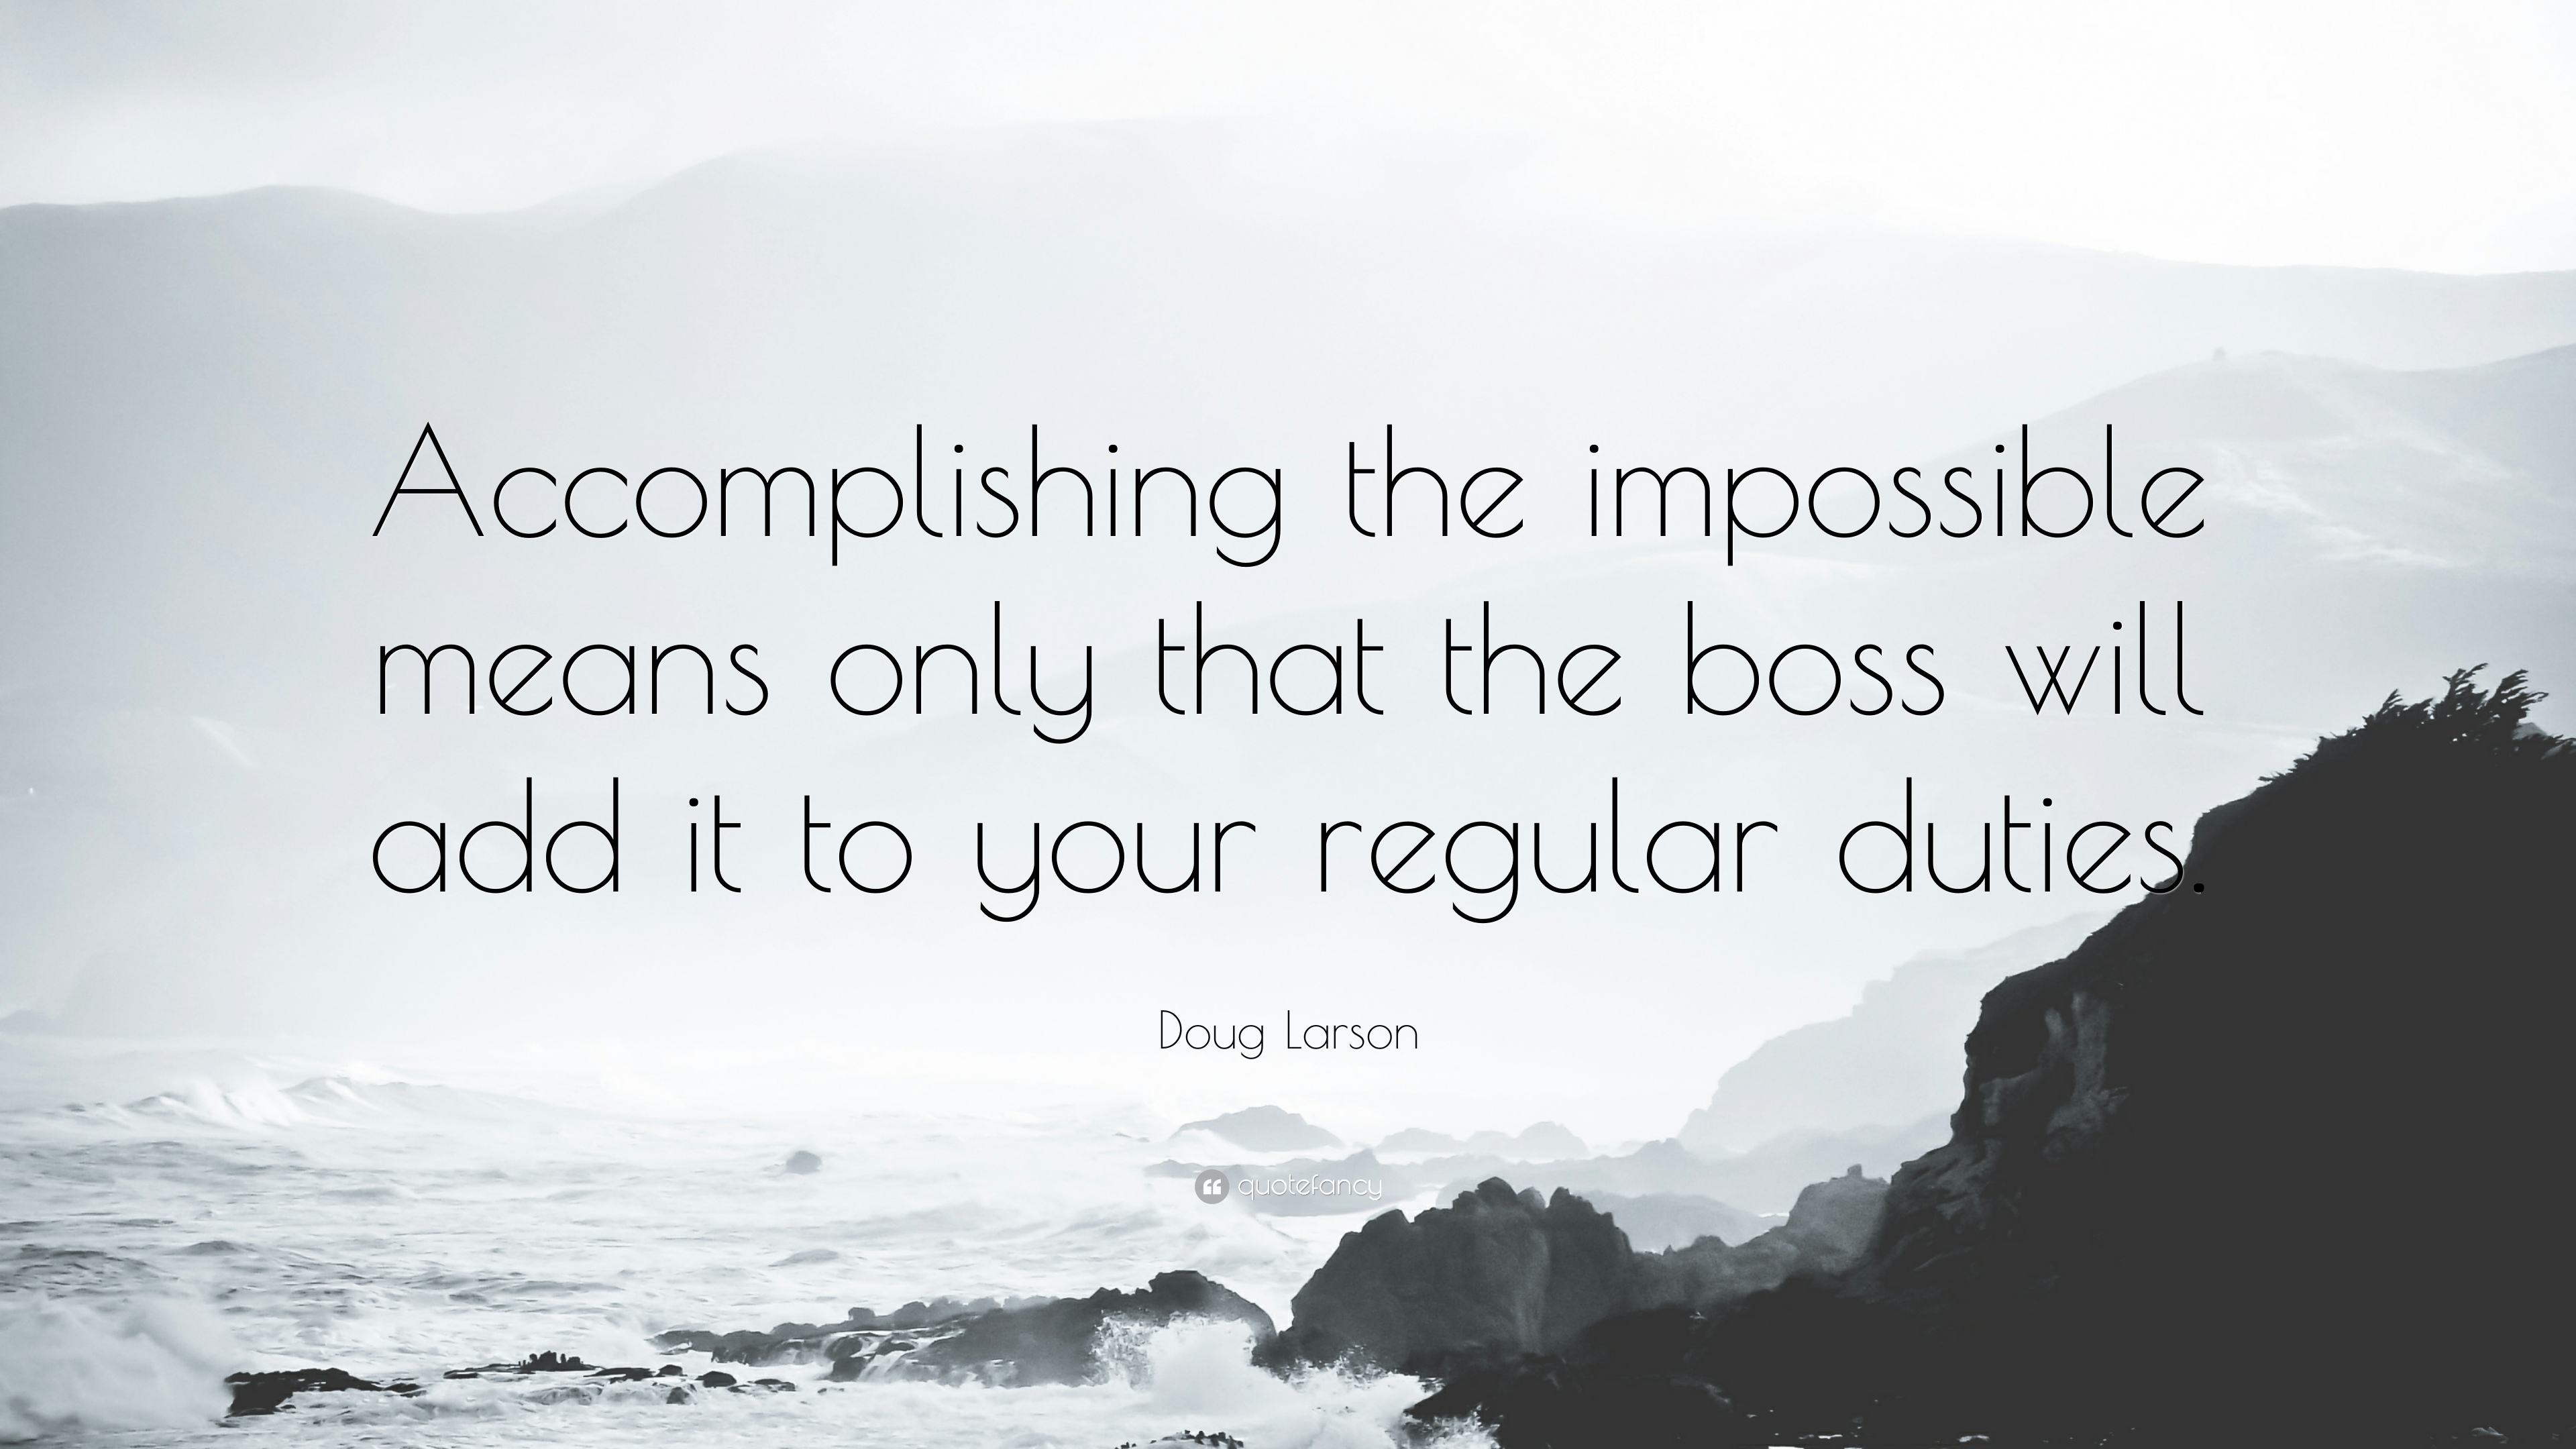 funny quotes quotefancy funny quotes accomplishing the impossible means only that the boss will add it to